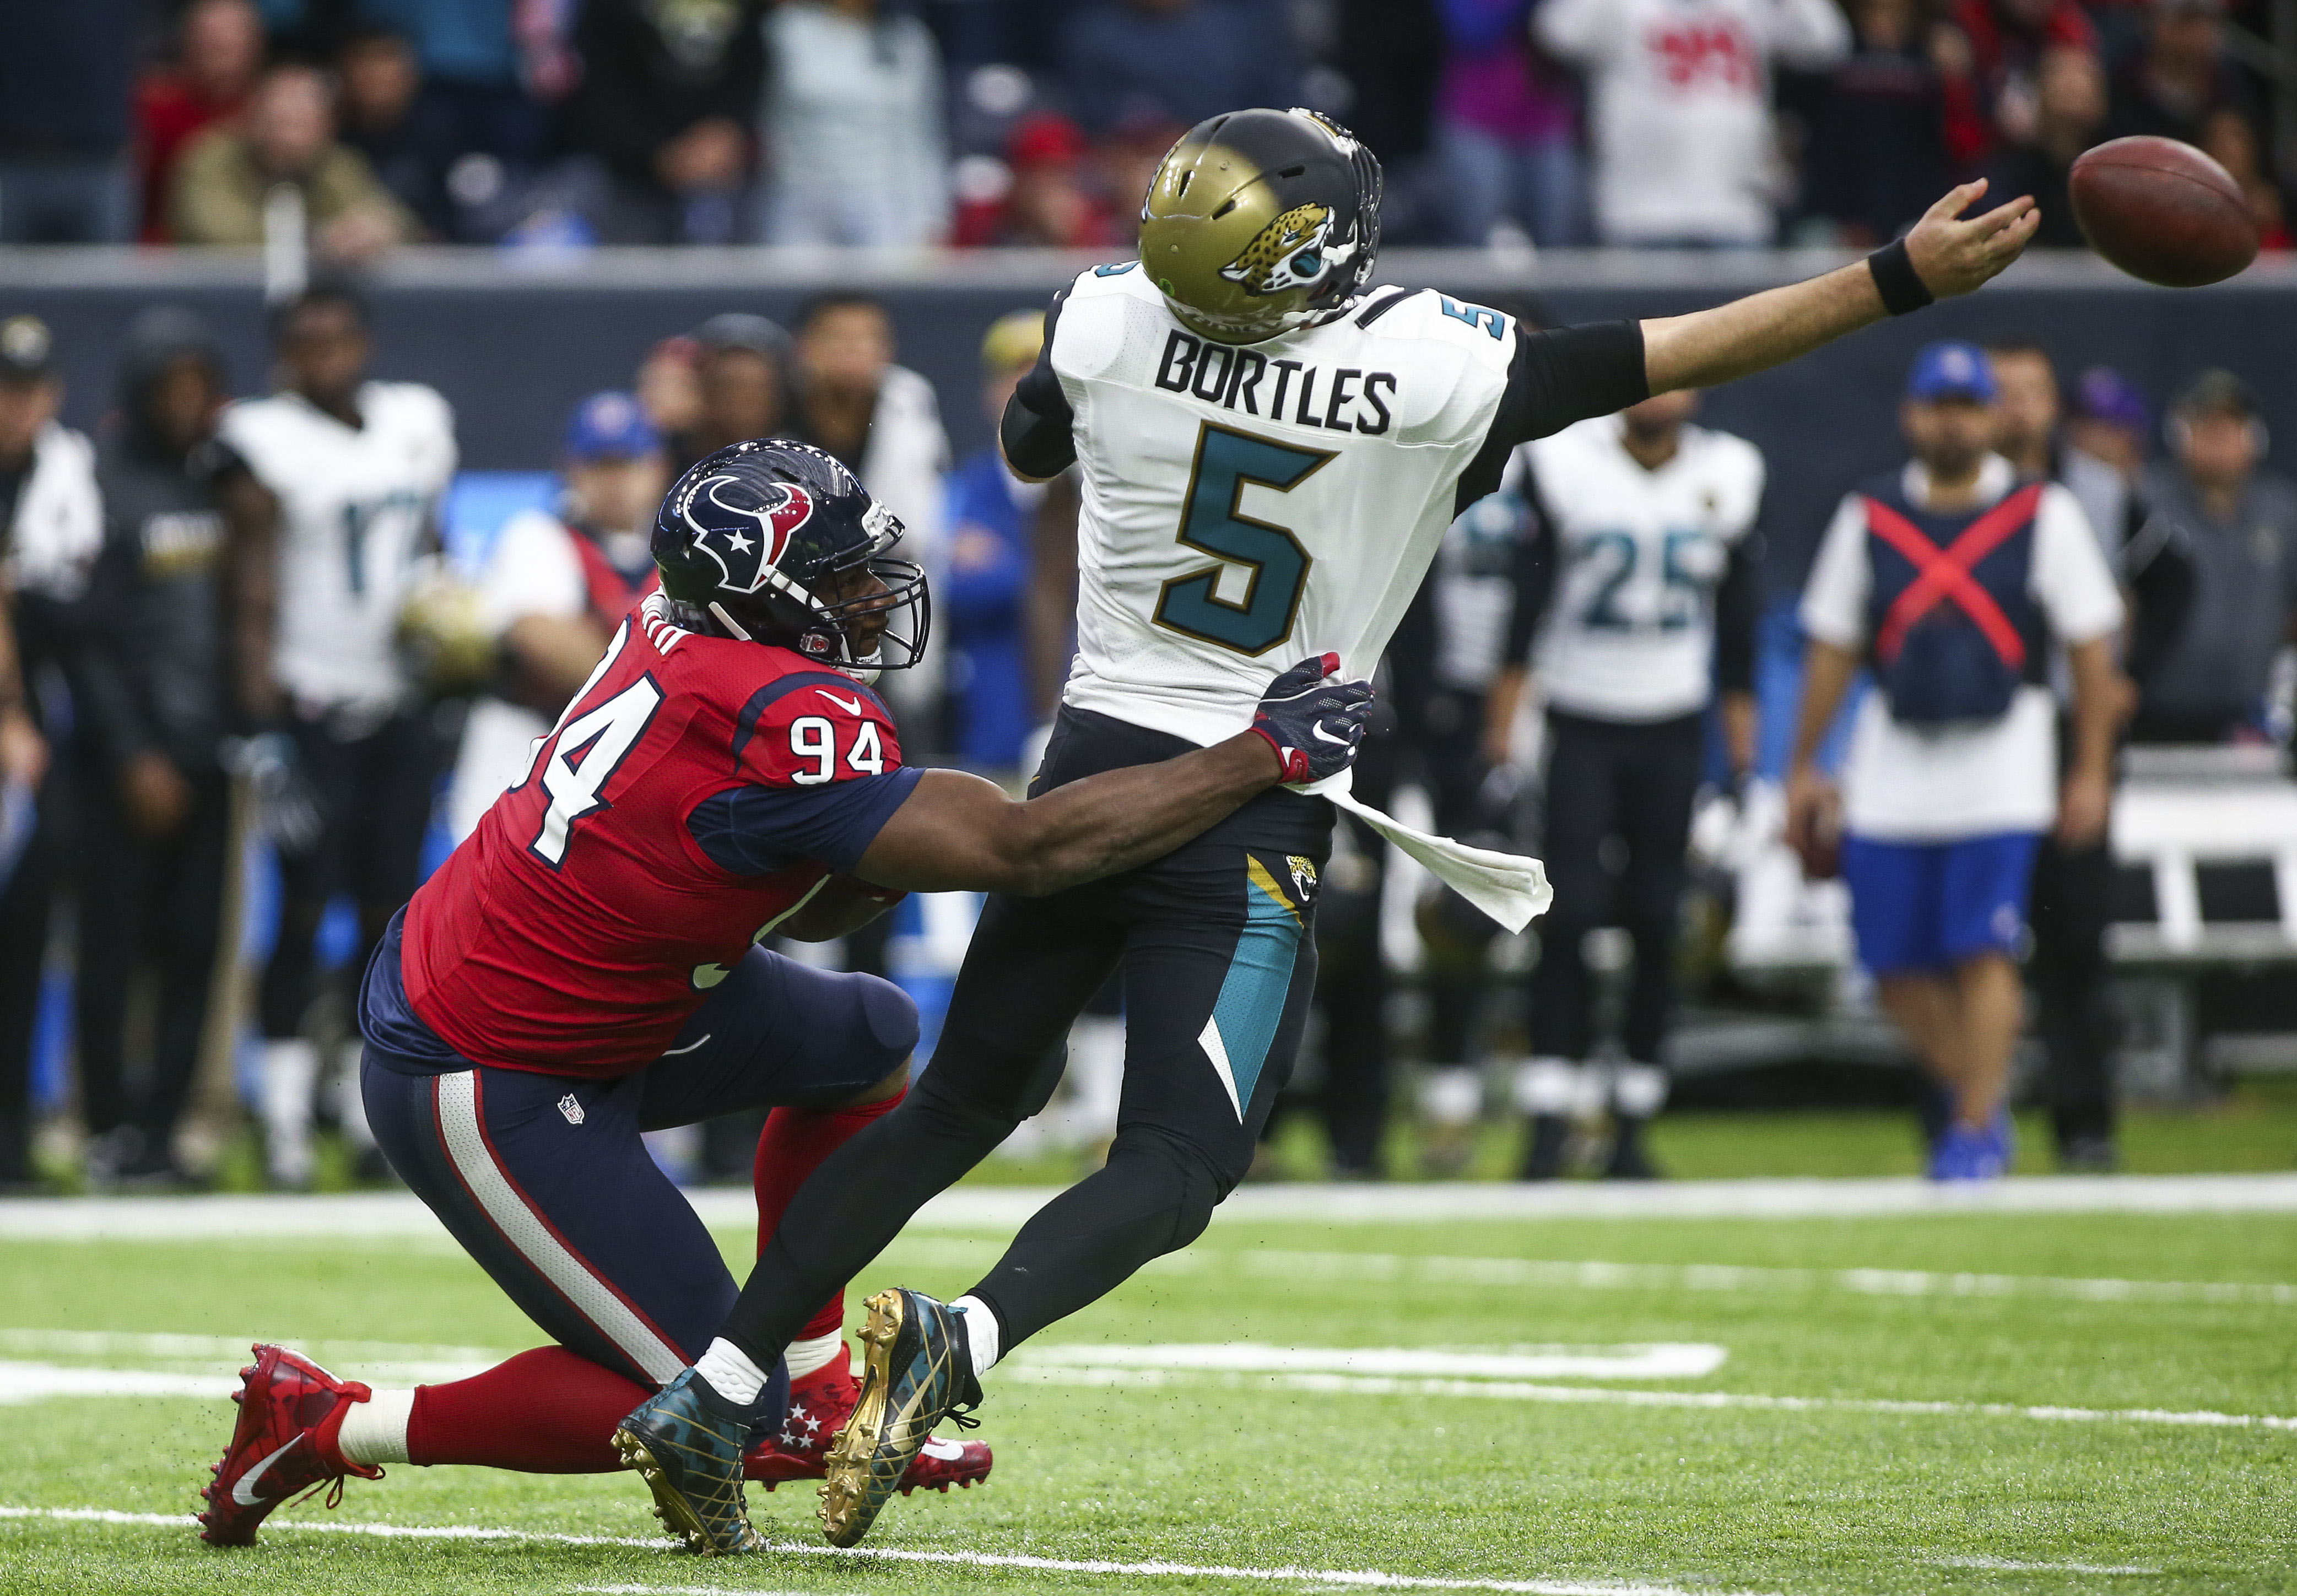 f94256b9 Breaking down the Houston Texans' first 4 games of the 2017 NFL season